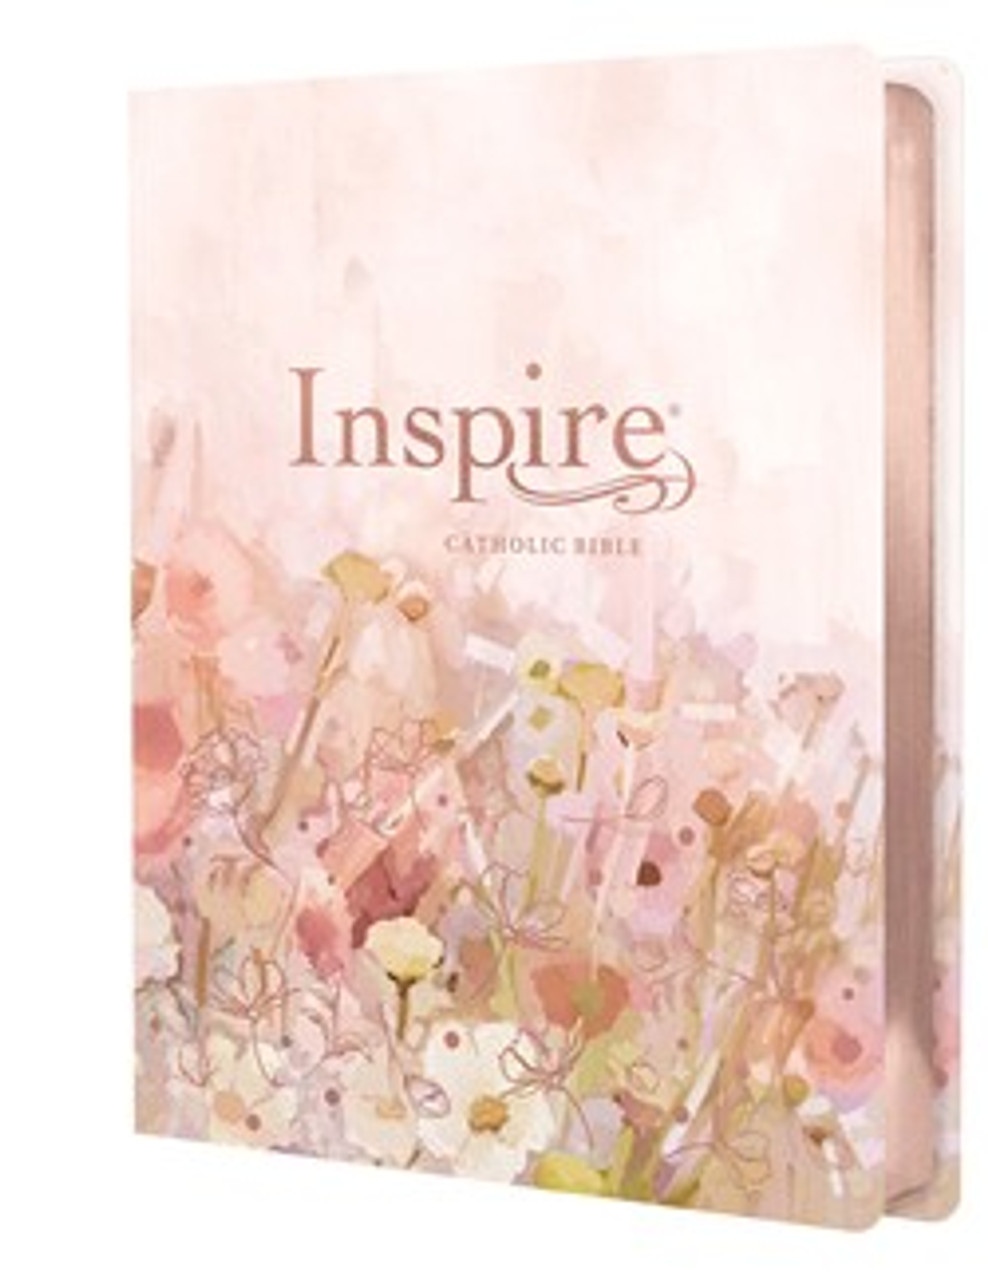 Inspire Catholic Bible NLT Large Print (Leatherlike, Pink Fields with Rose Gold): The Bible for Coloring & Creative Journaling - Large Print